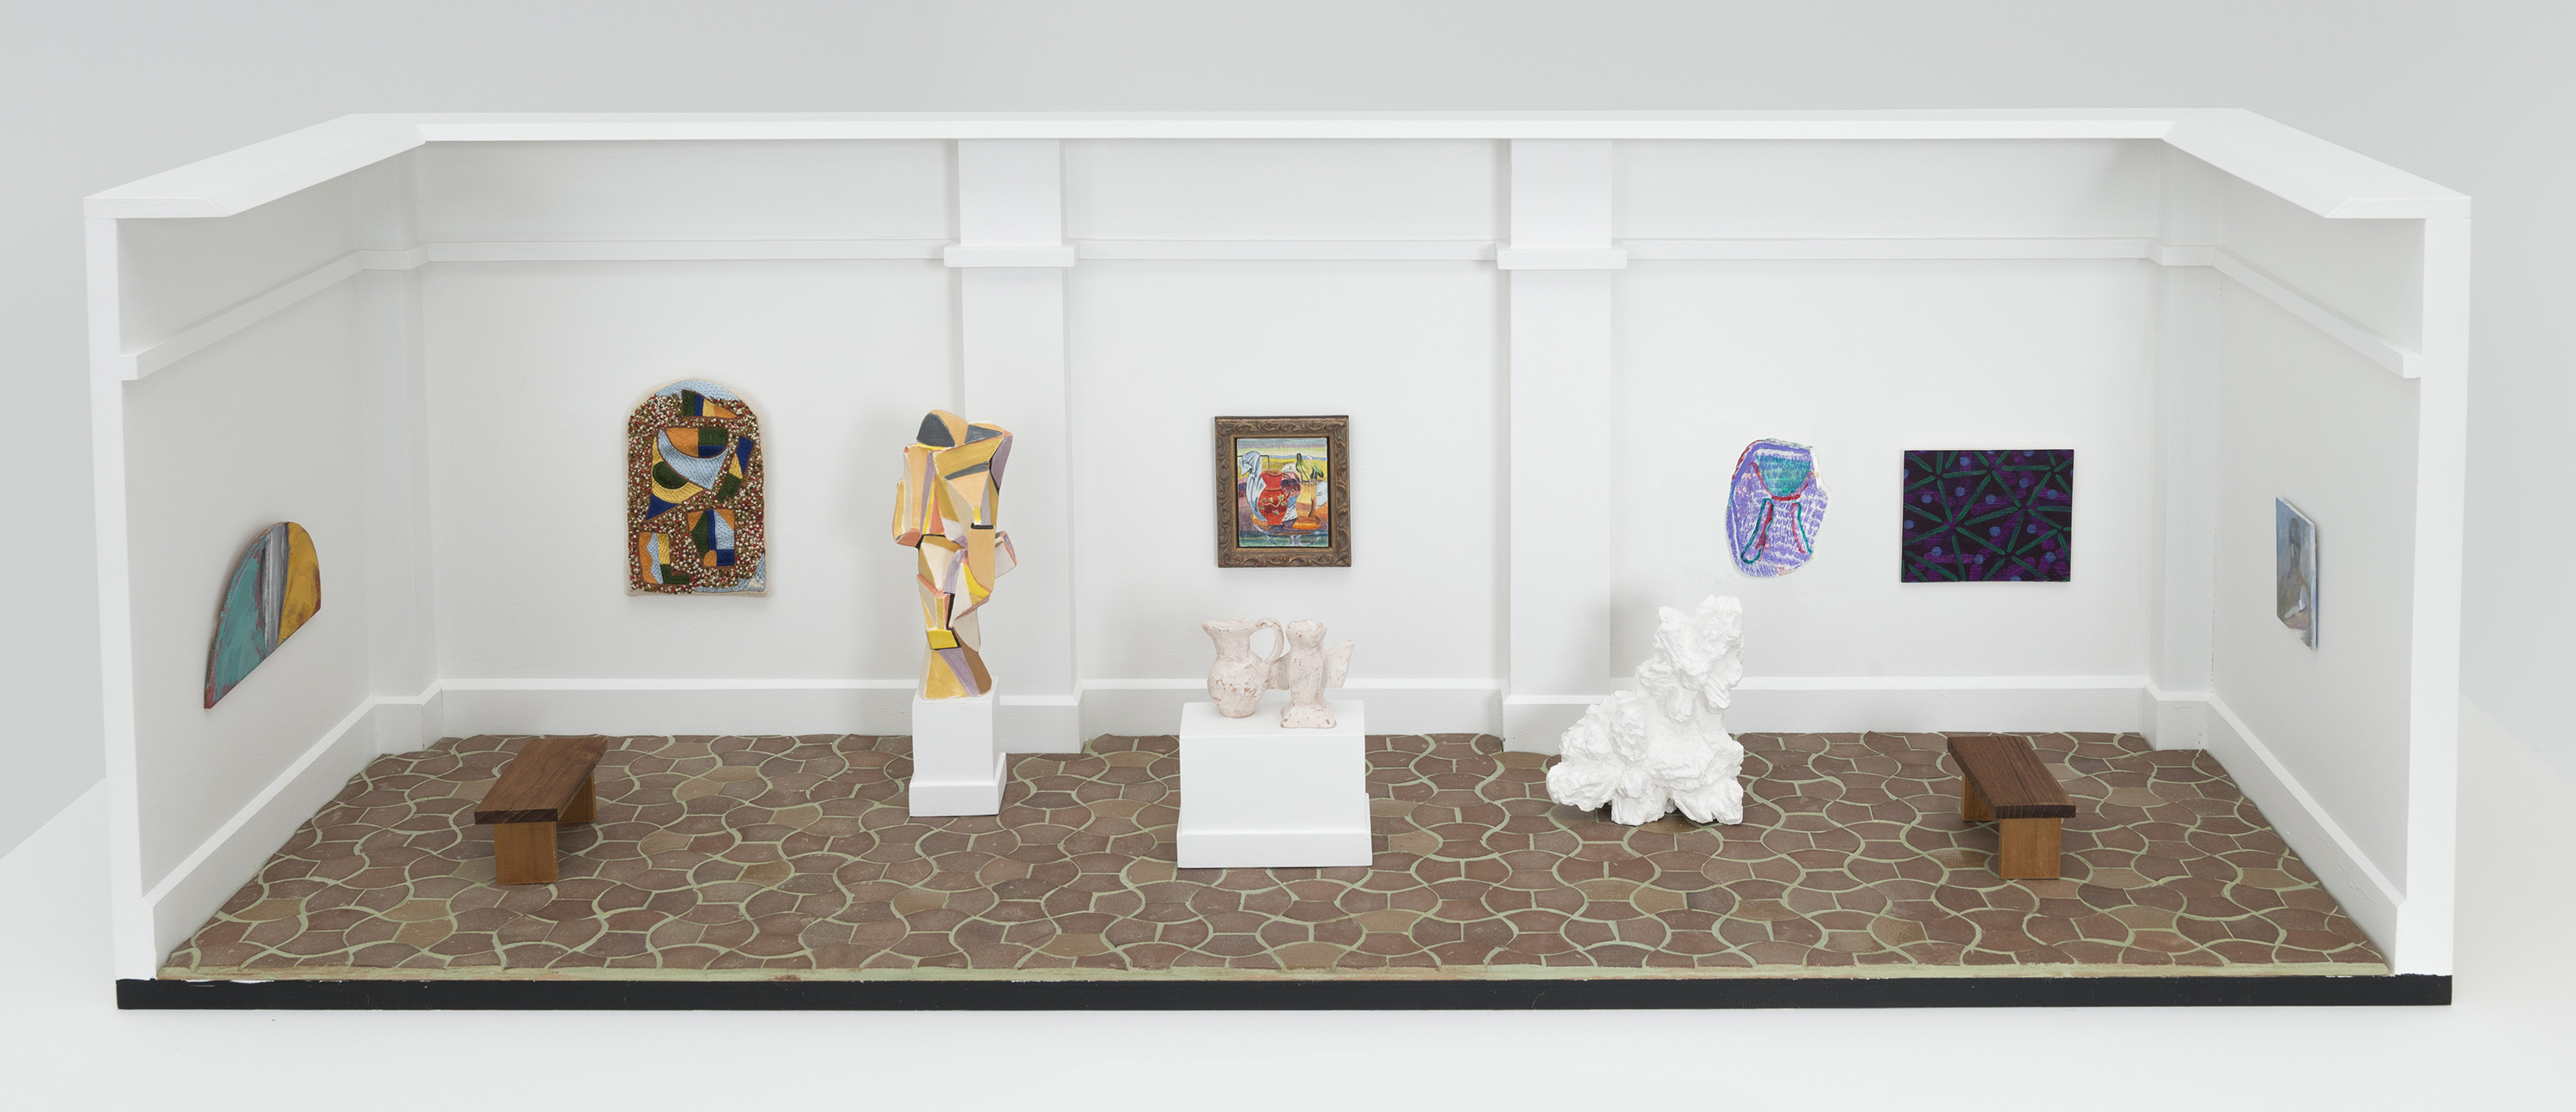 19 Gallery: Relocating Frances Hodgkins